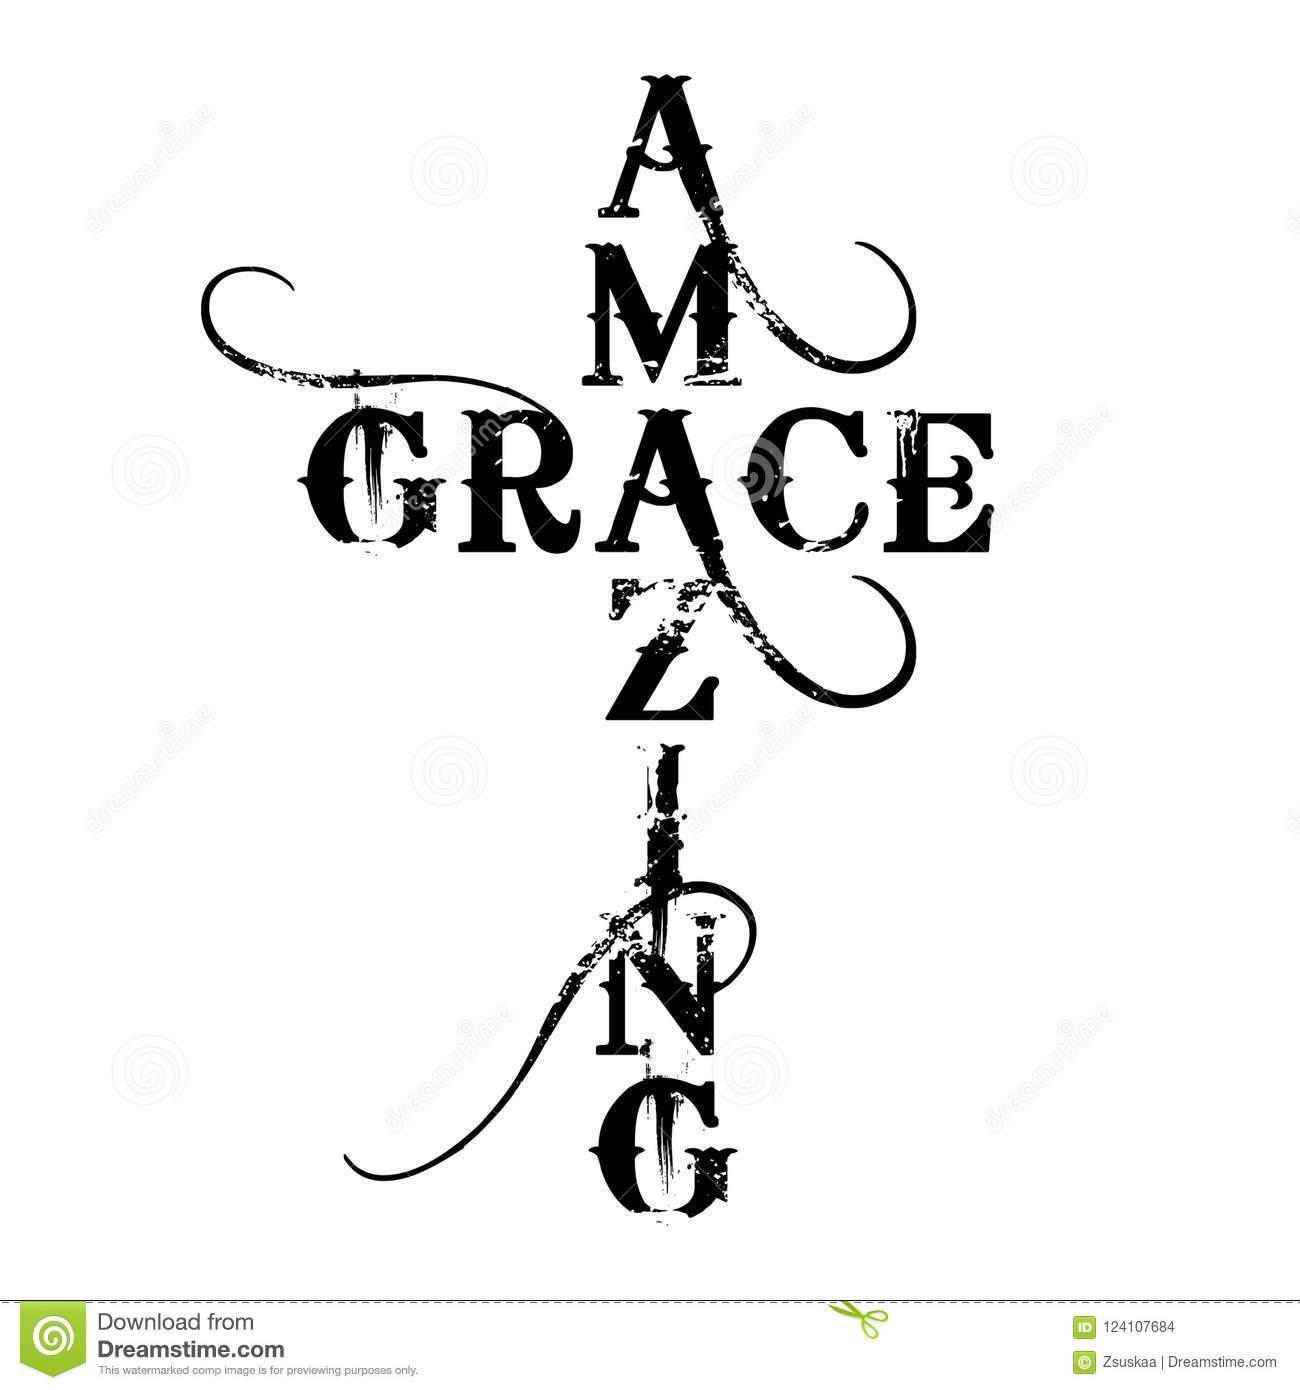 Grace Cartoons, Illustrations & Vector Stock Images